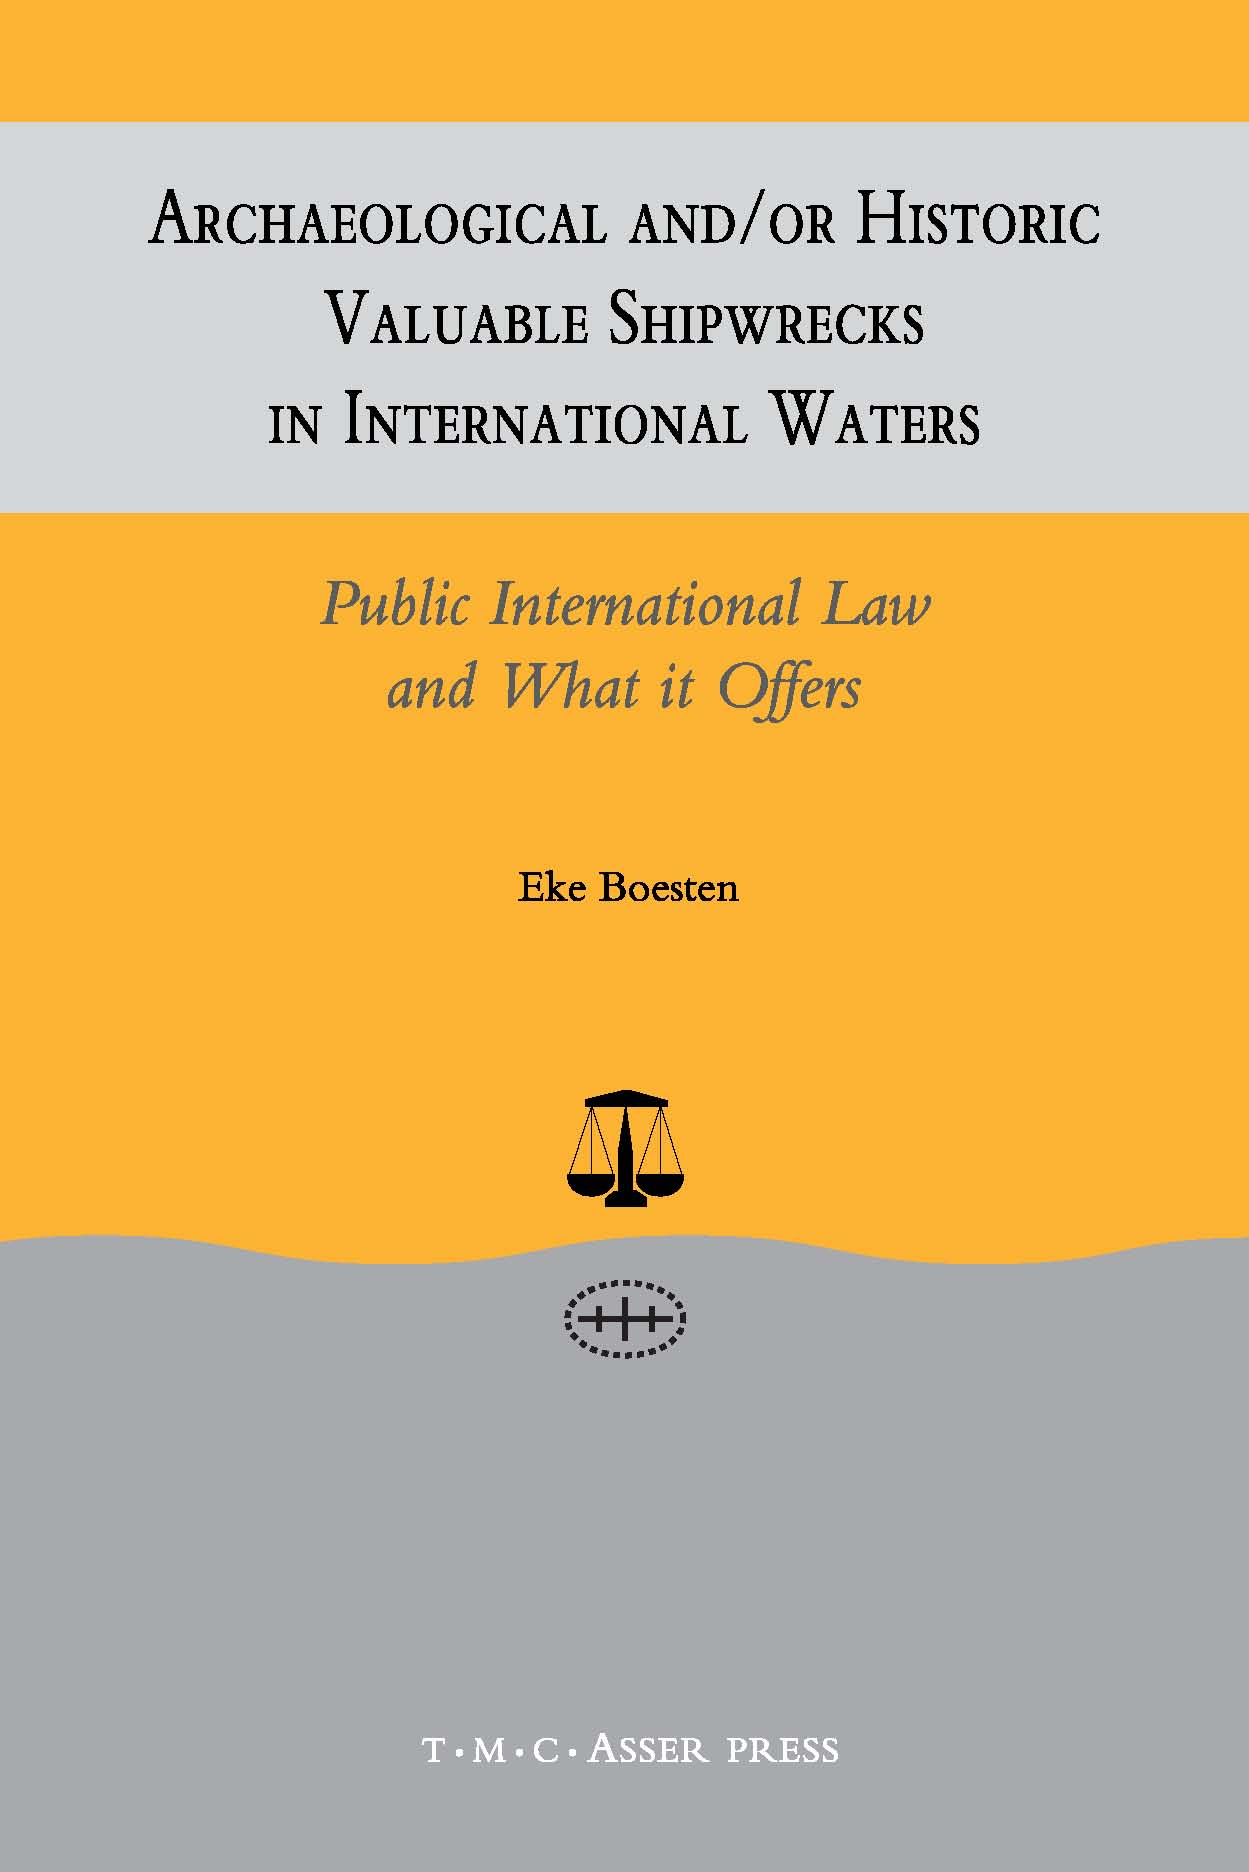 Archaeological and/or Historic Valuable Shipwrecks in International Waters - Public International Law and What it Offers